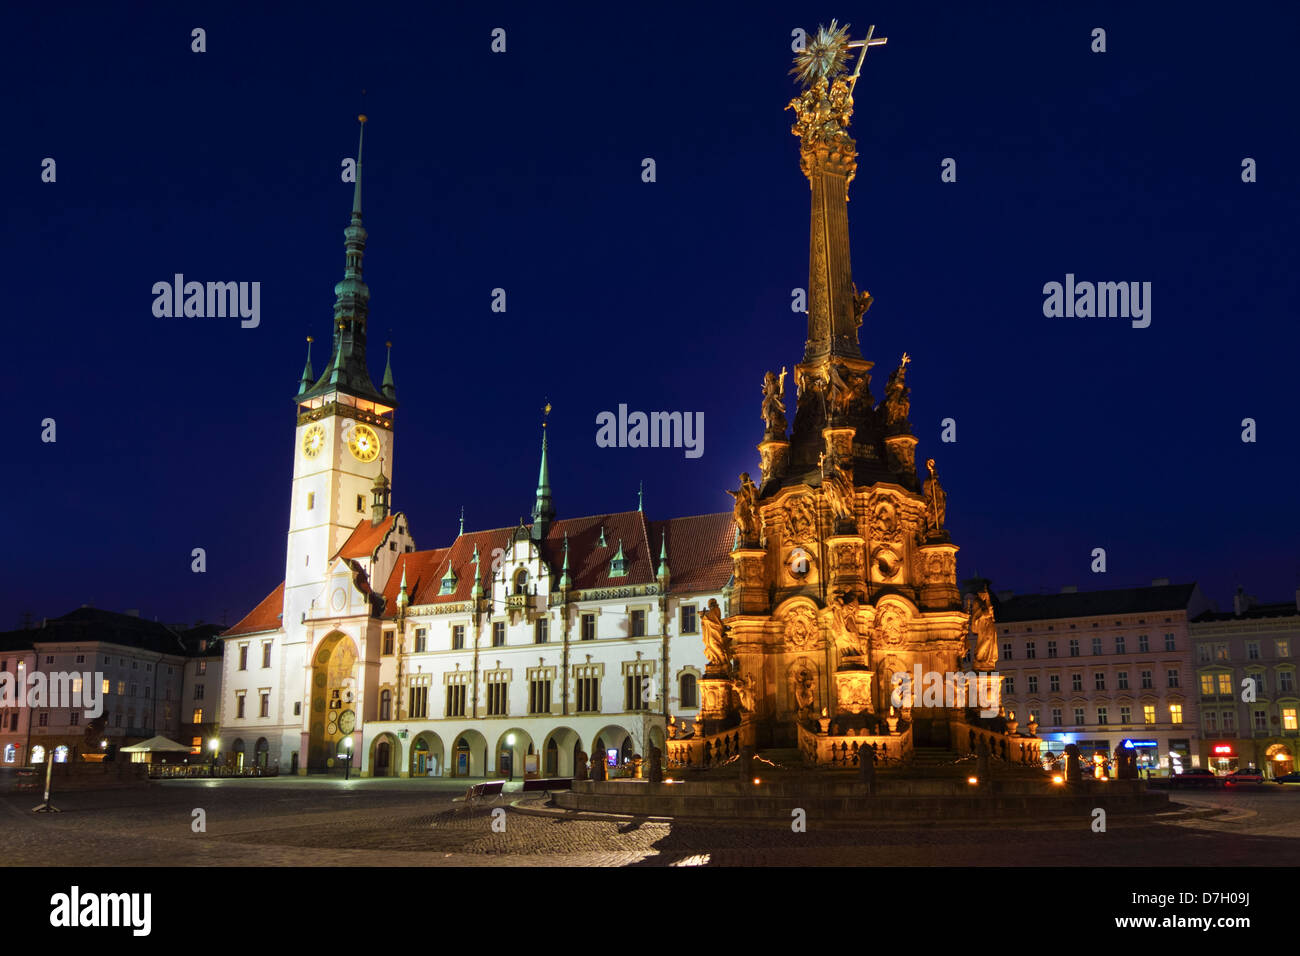 Holy Trinity Column and Town Hall at night. Olomouc, Moravia, Czech Republic - Stock Image